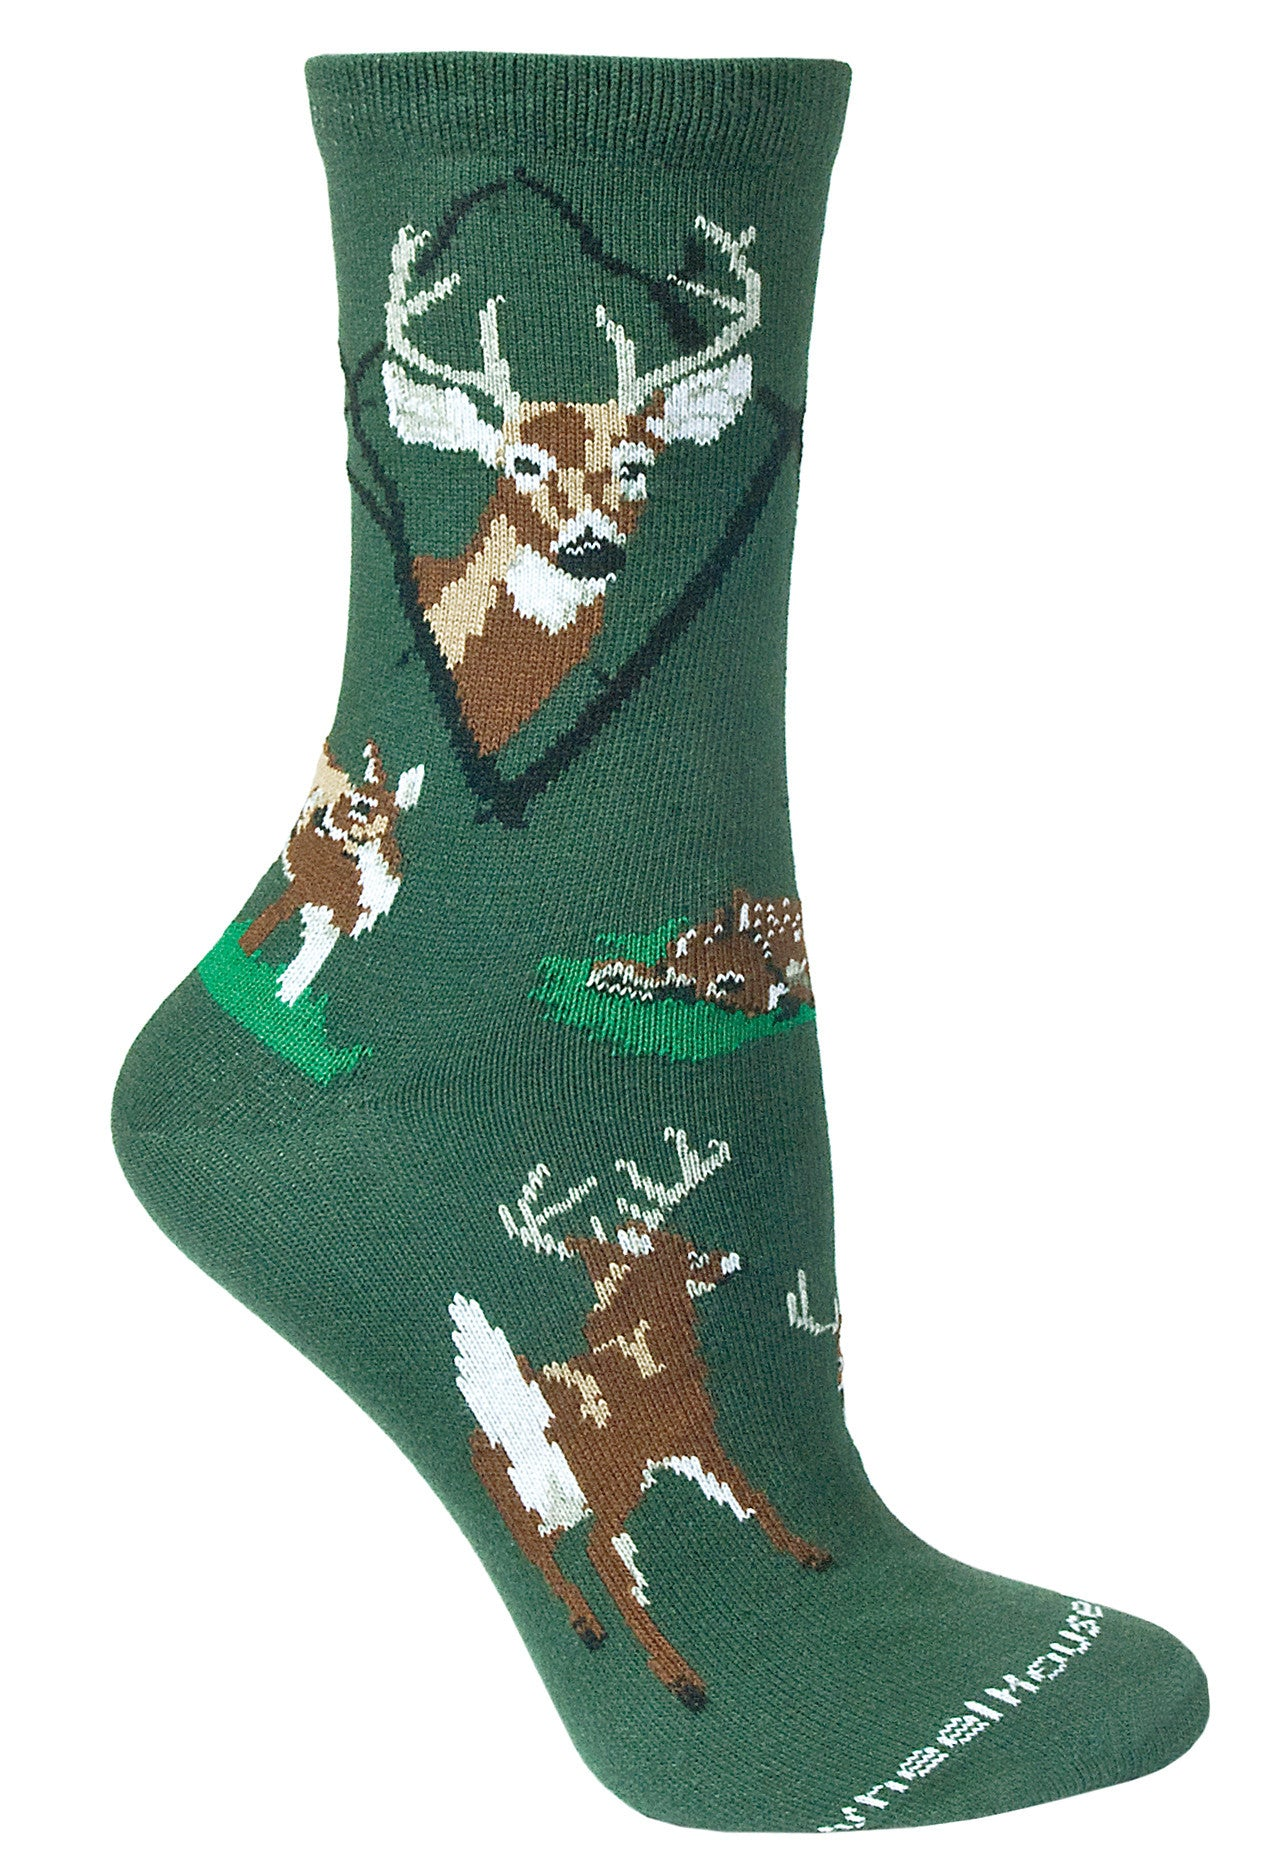 Deer, Whitetail on Hunter Green Crew Socks